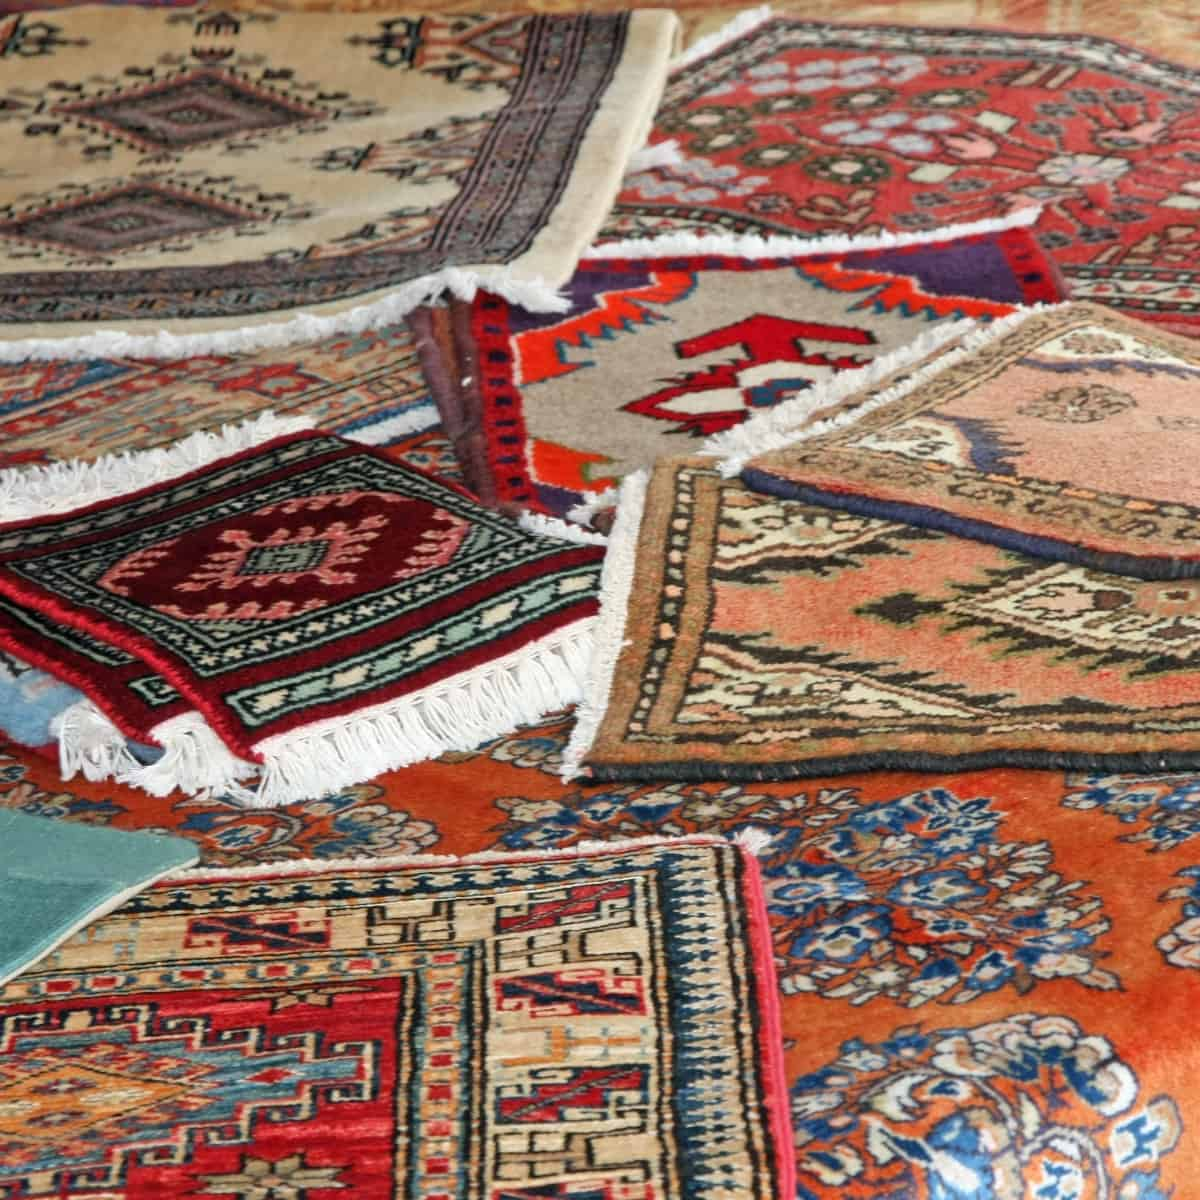 A collection of rugs together on the floor